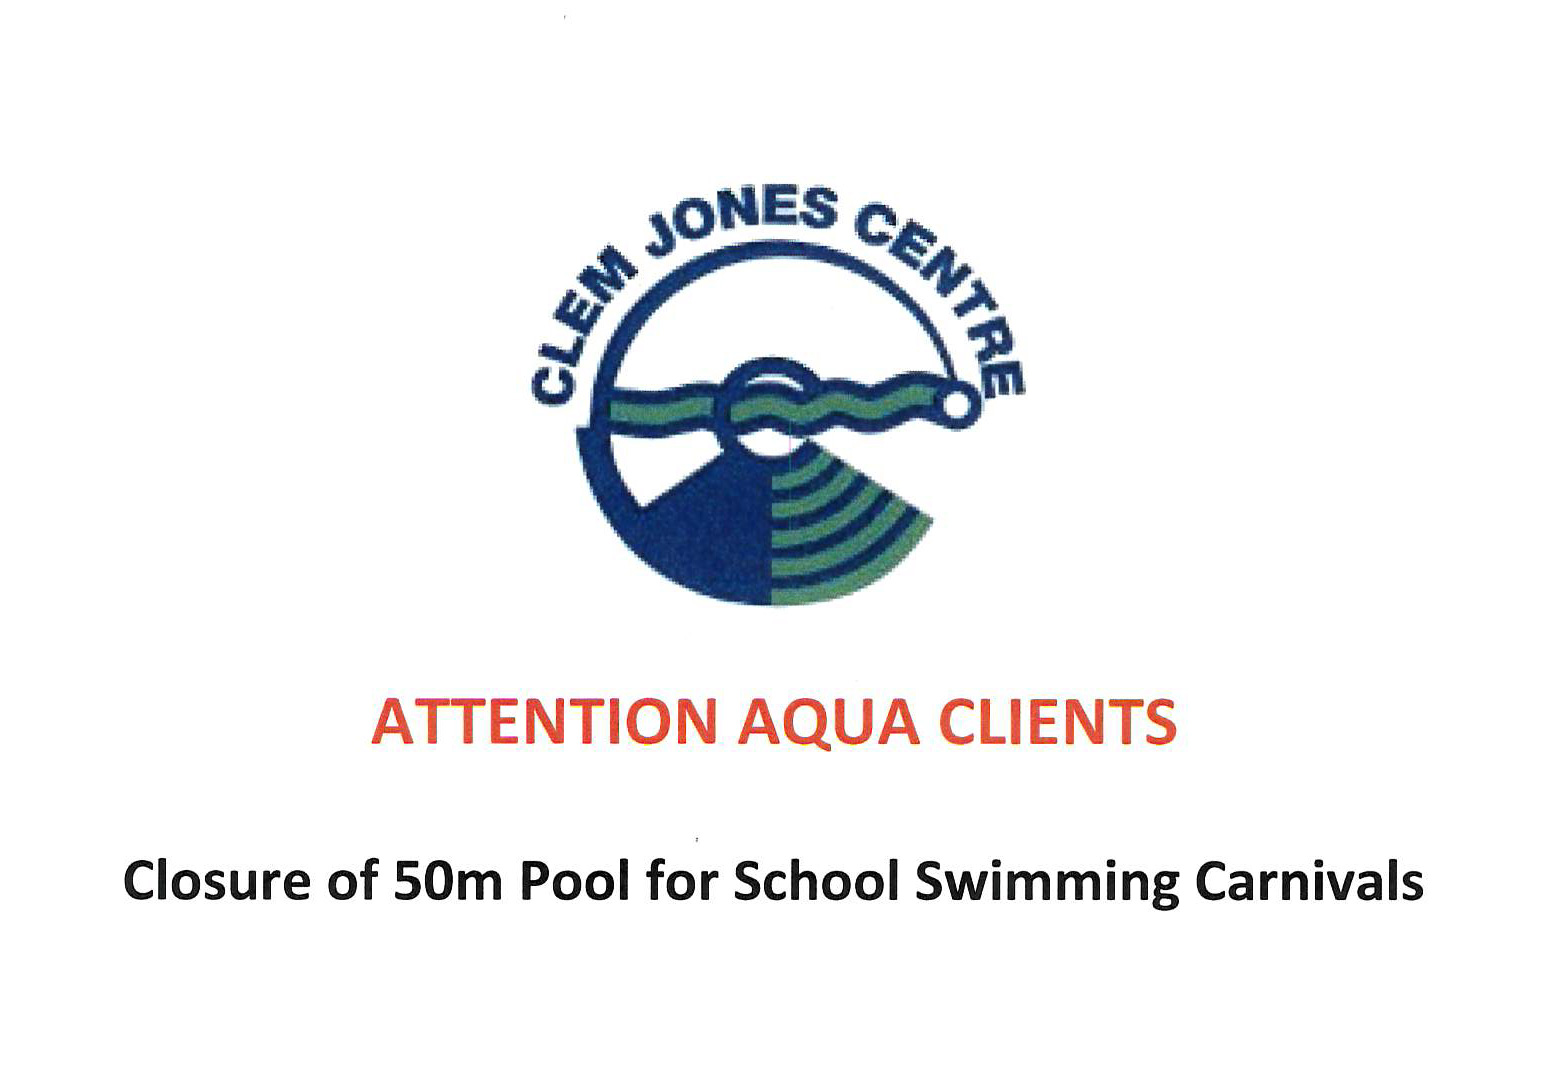 School Carnival Pool Closure for School Carnivals Feb 2018